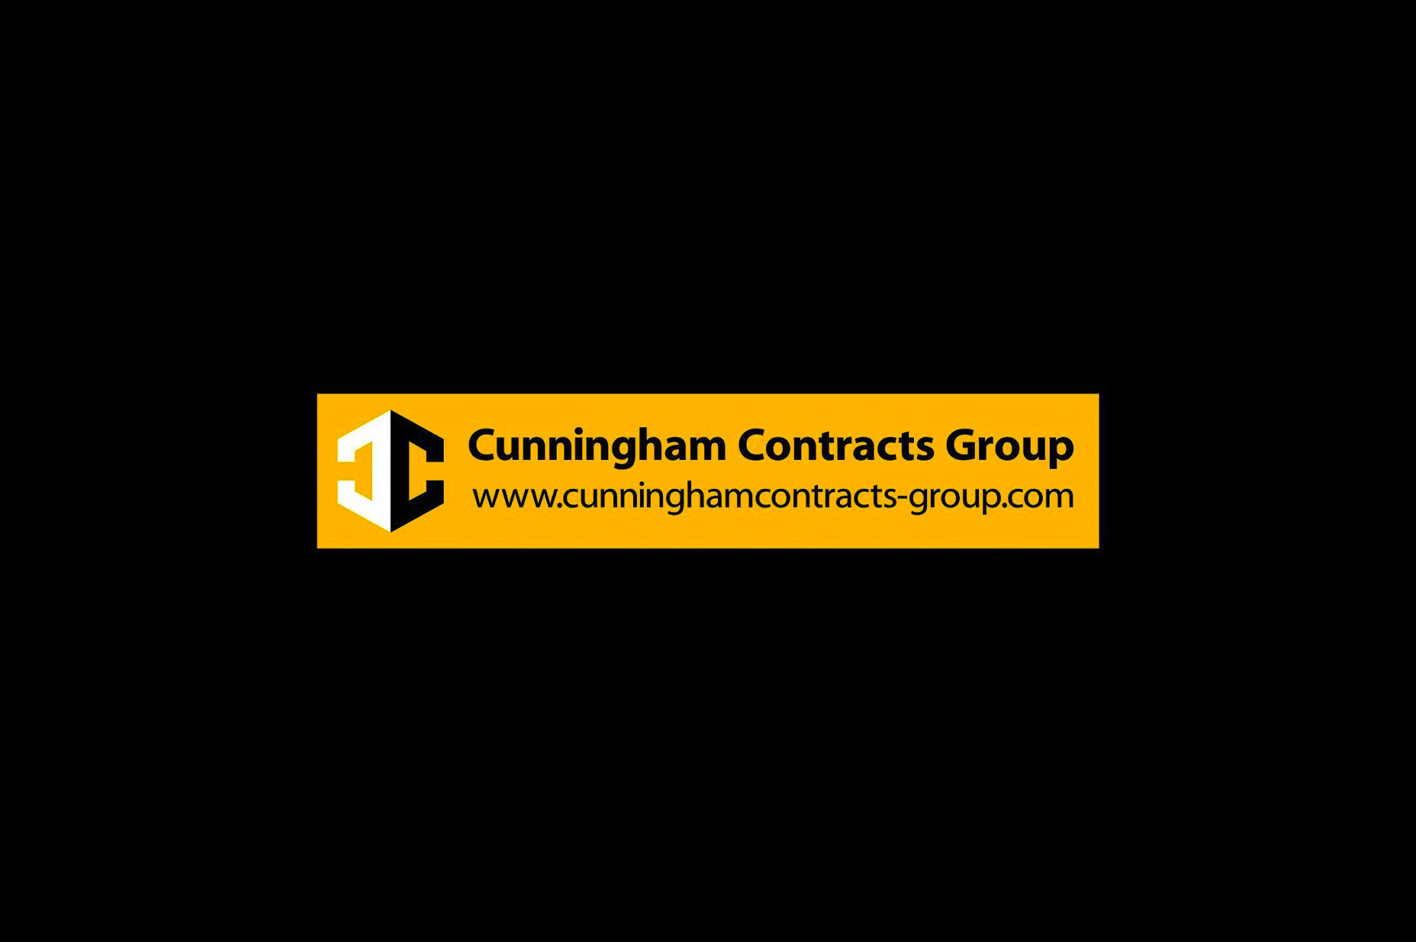 cunninham contracts website designers newry